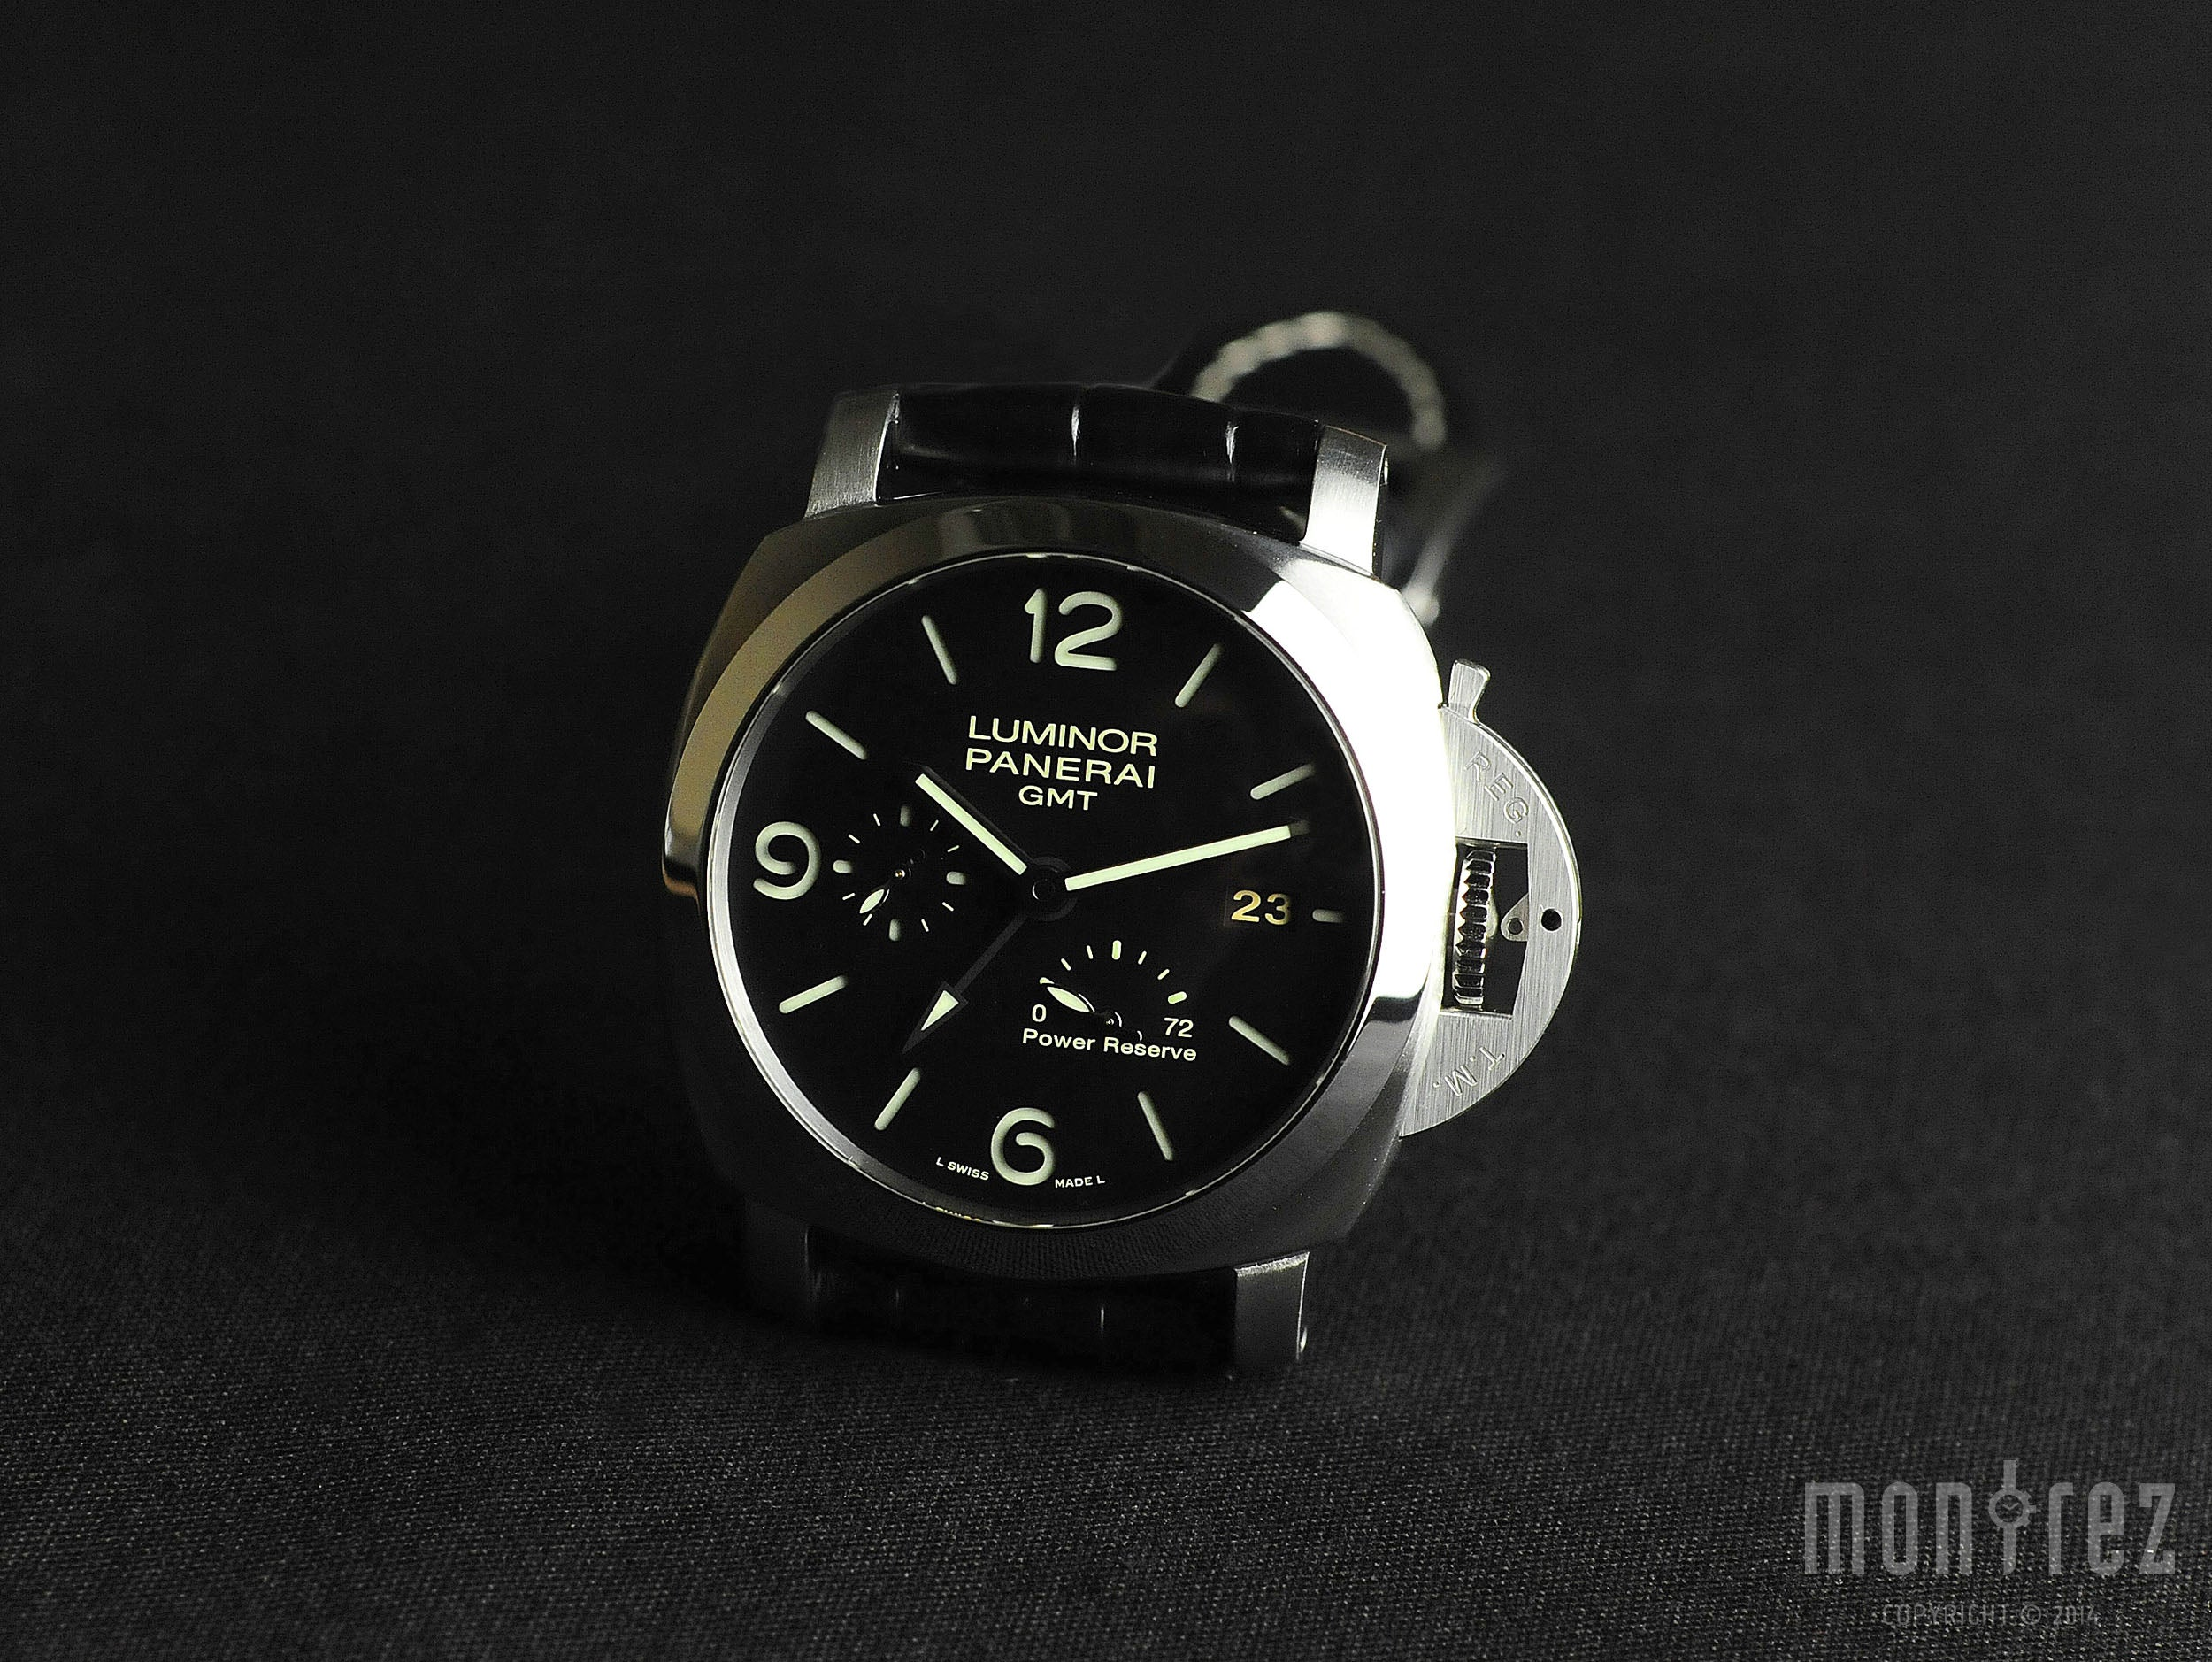 Panerai Luminor Marina 1950 3 Days GMT Power Reserve Automatic 44mm PAM00321 (Out of Production)